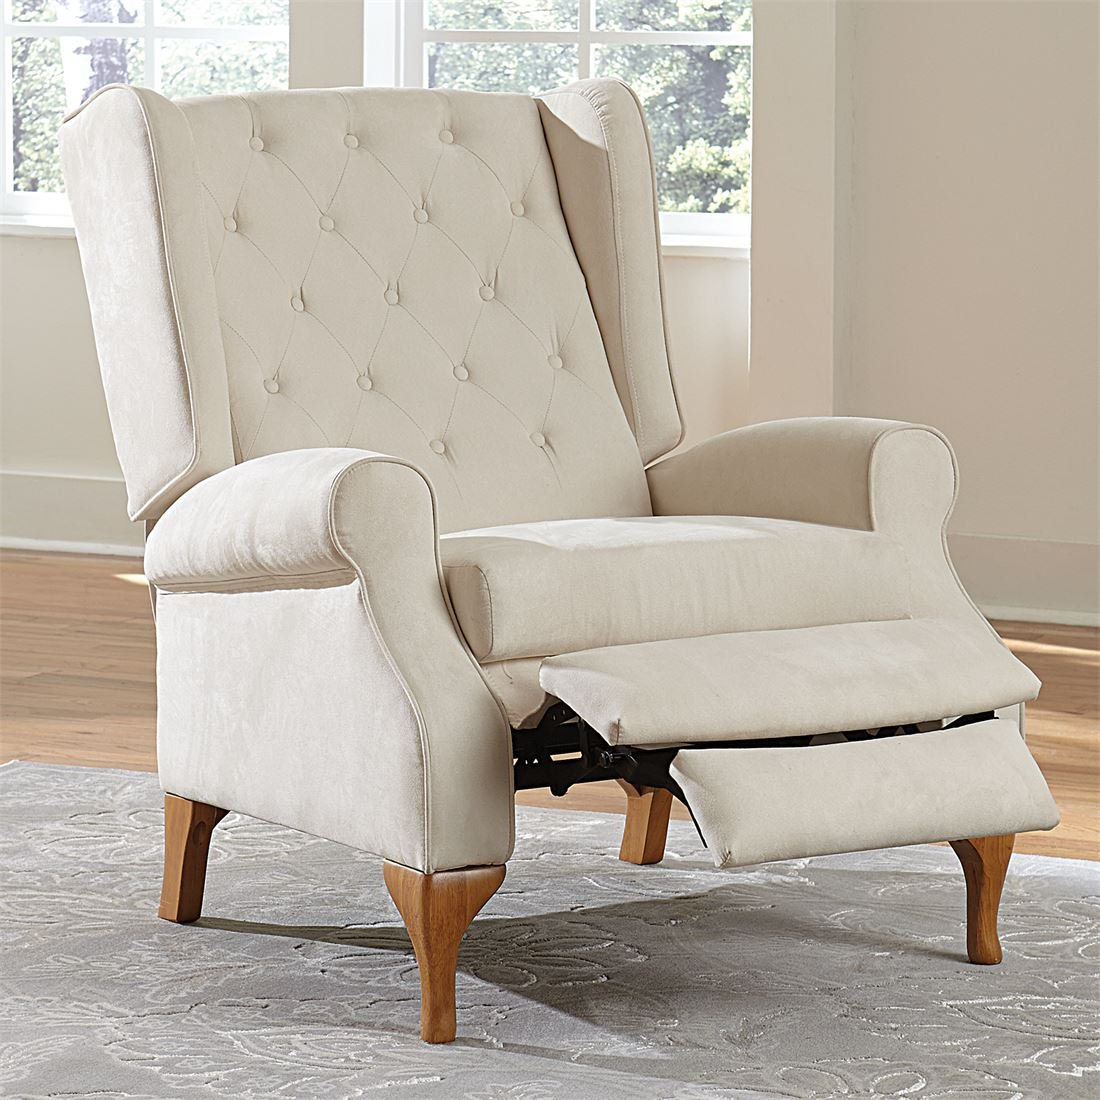 Amazon.com Brylanehome Queen Anne Style Tufted Wingback Recliner (Ivory0) Kitchen u0026 Dining  sc 1 st  Amazon.com & Amazon.com: Brylanehome Queen Anne Style Tufted Wingback Recliner ... islam-shia.org